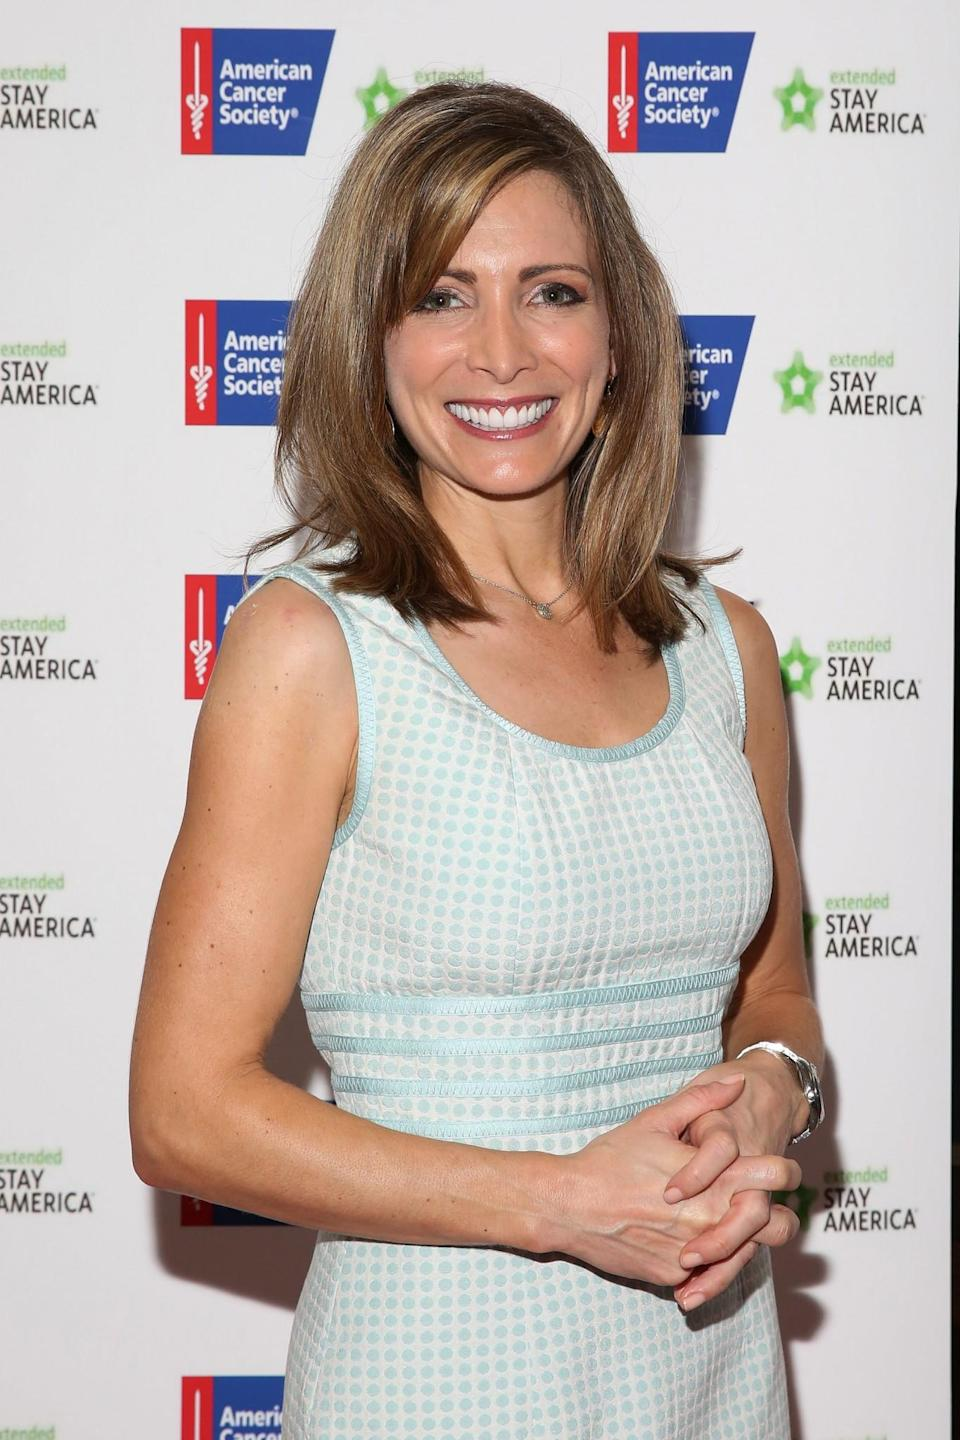 <p>Back in 1996, Shannon Miller earned the title of the most decorated gymnast in U.S. history after winning nine world championship medals and seven Olympic medals. In 2011, she was diagnosed with ovarian cancer but has since been declared cancer-free. Today, Miller lives in Jacksonville, Florida, and is president of both Shannon Miller Lifestyle: Health and Fitness for Women and the Shannon Miller Foundation. She has a son and a daughter with husband John Falconetti. (AP) </p>